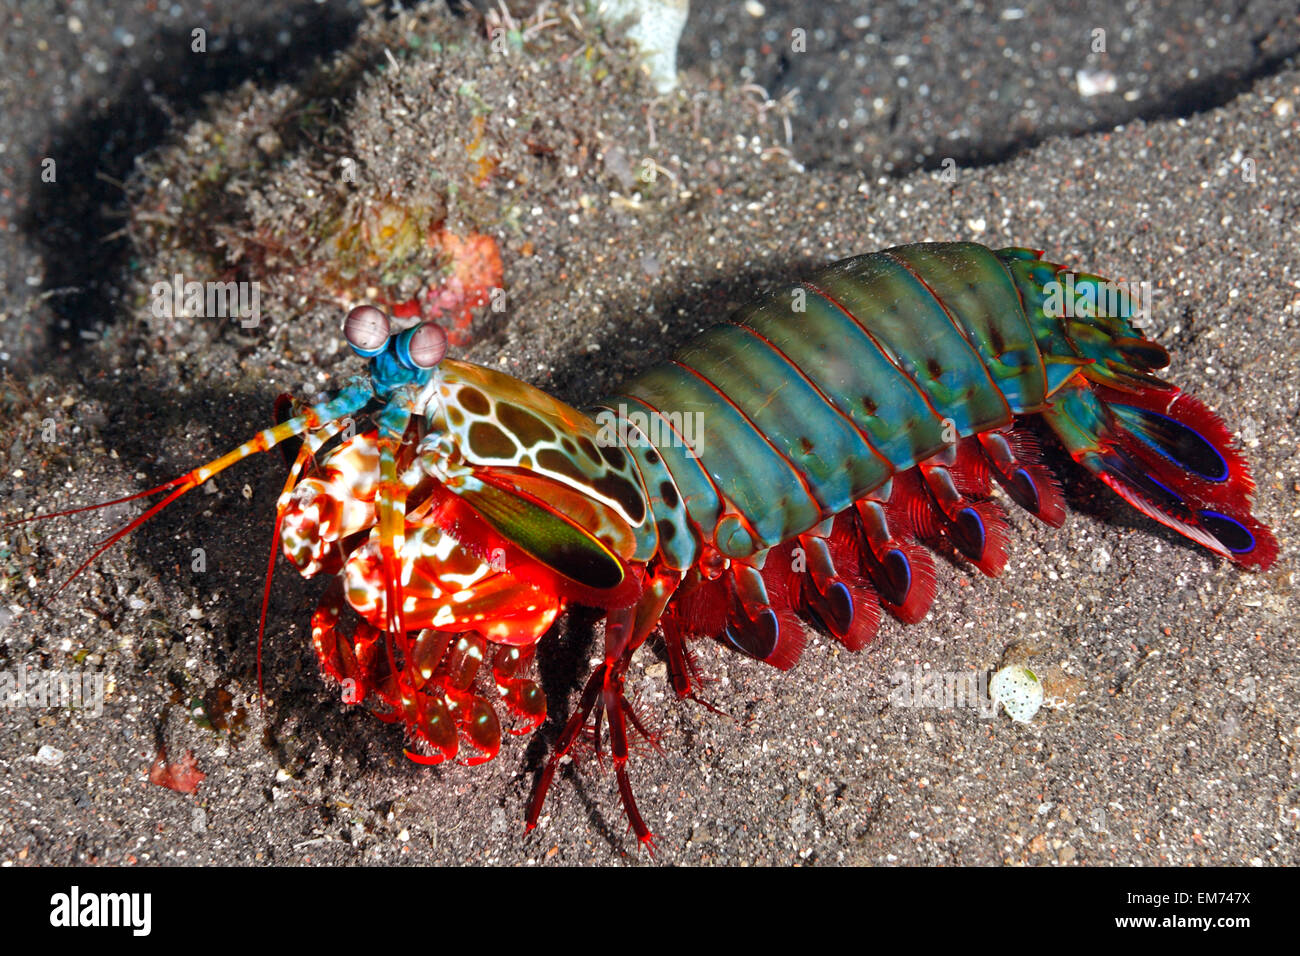 peacock-mantis-shrimp-odontodactylus-scyllarus-also-known-as-a-harlequin-EM747X.jpg